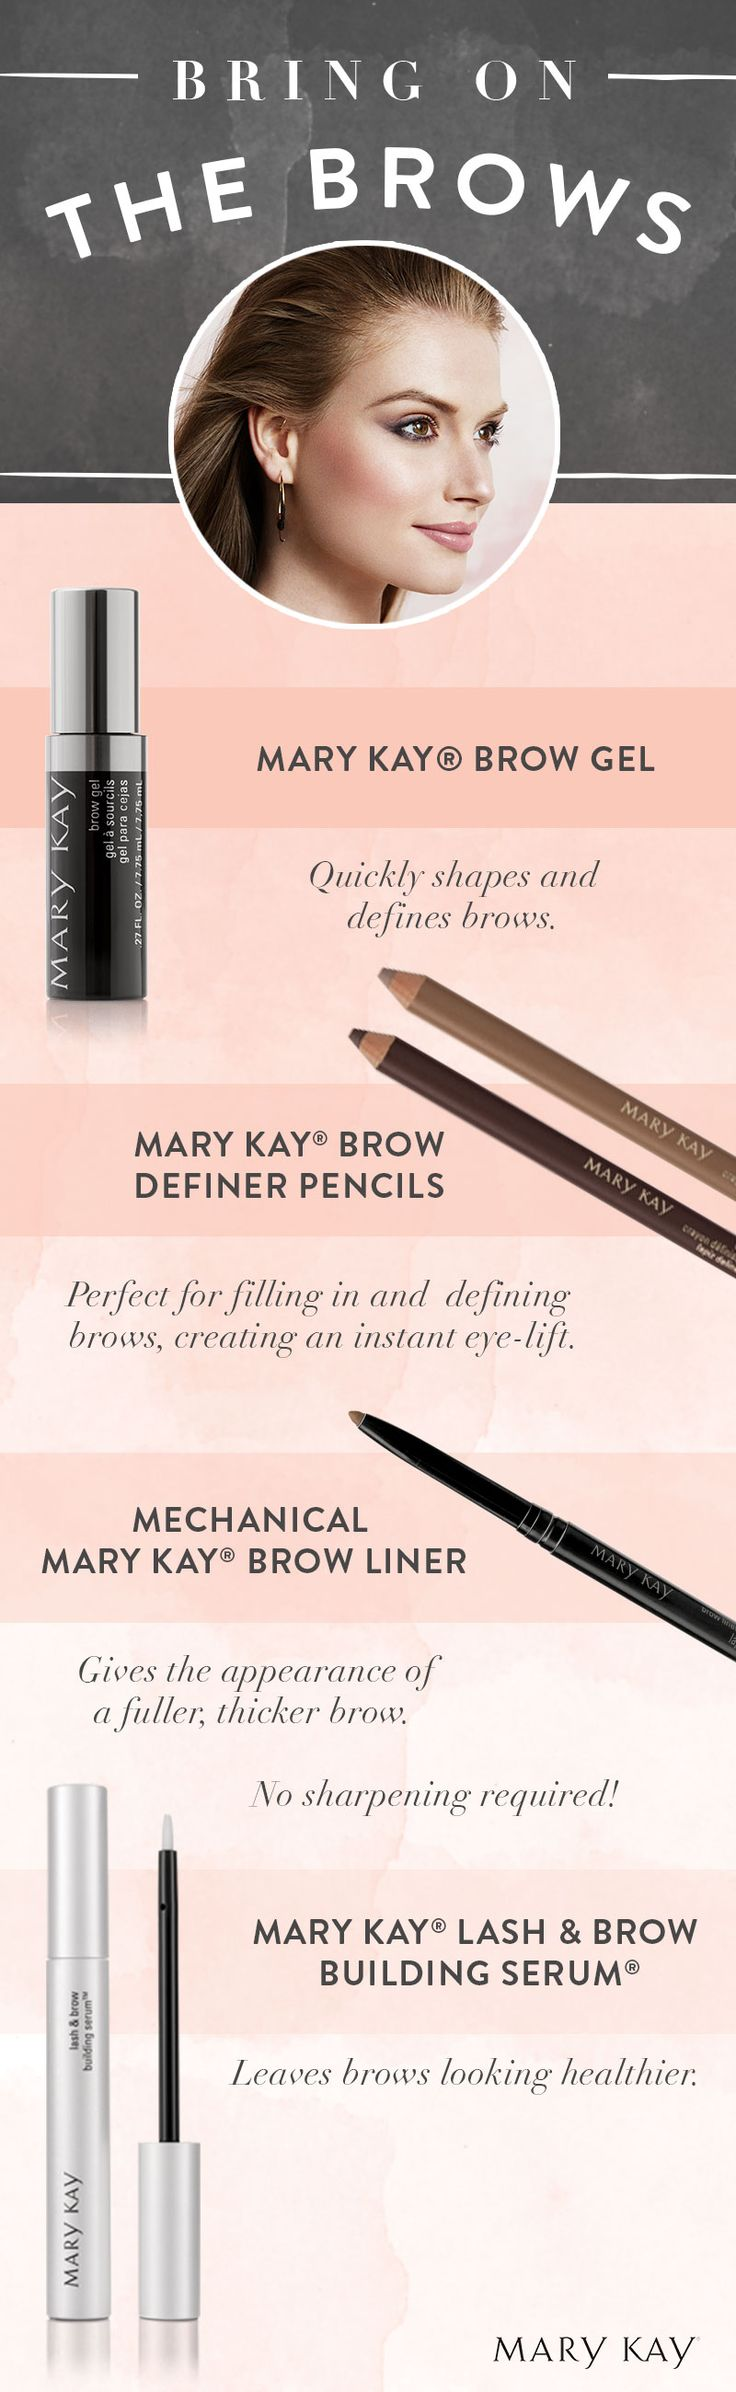 With a little brow know-how and the right tools, your brows can perfectly frame your eyes, enhance your features and balance your face! | Mary Kay